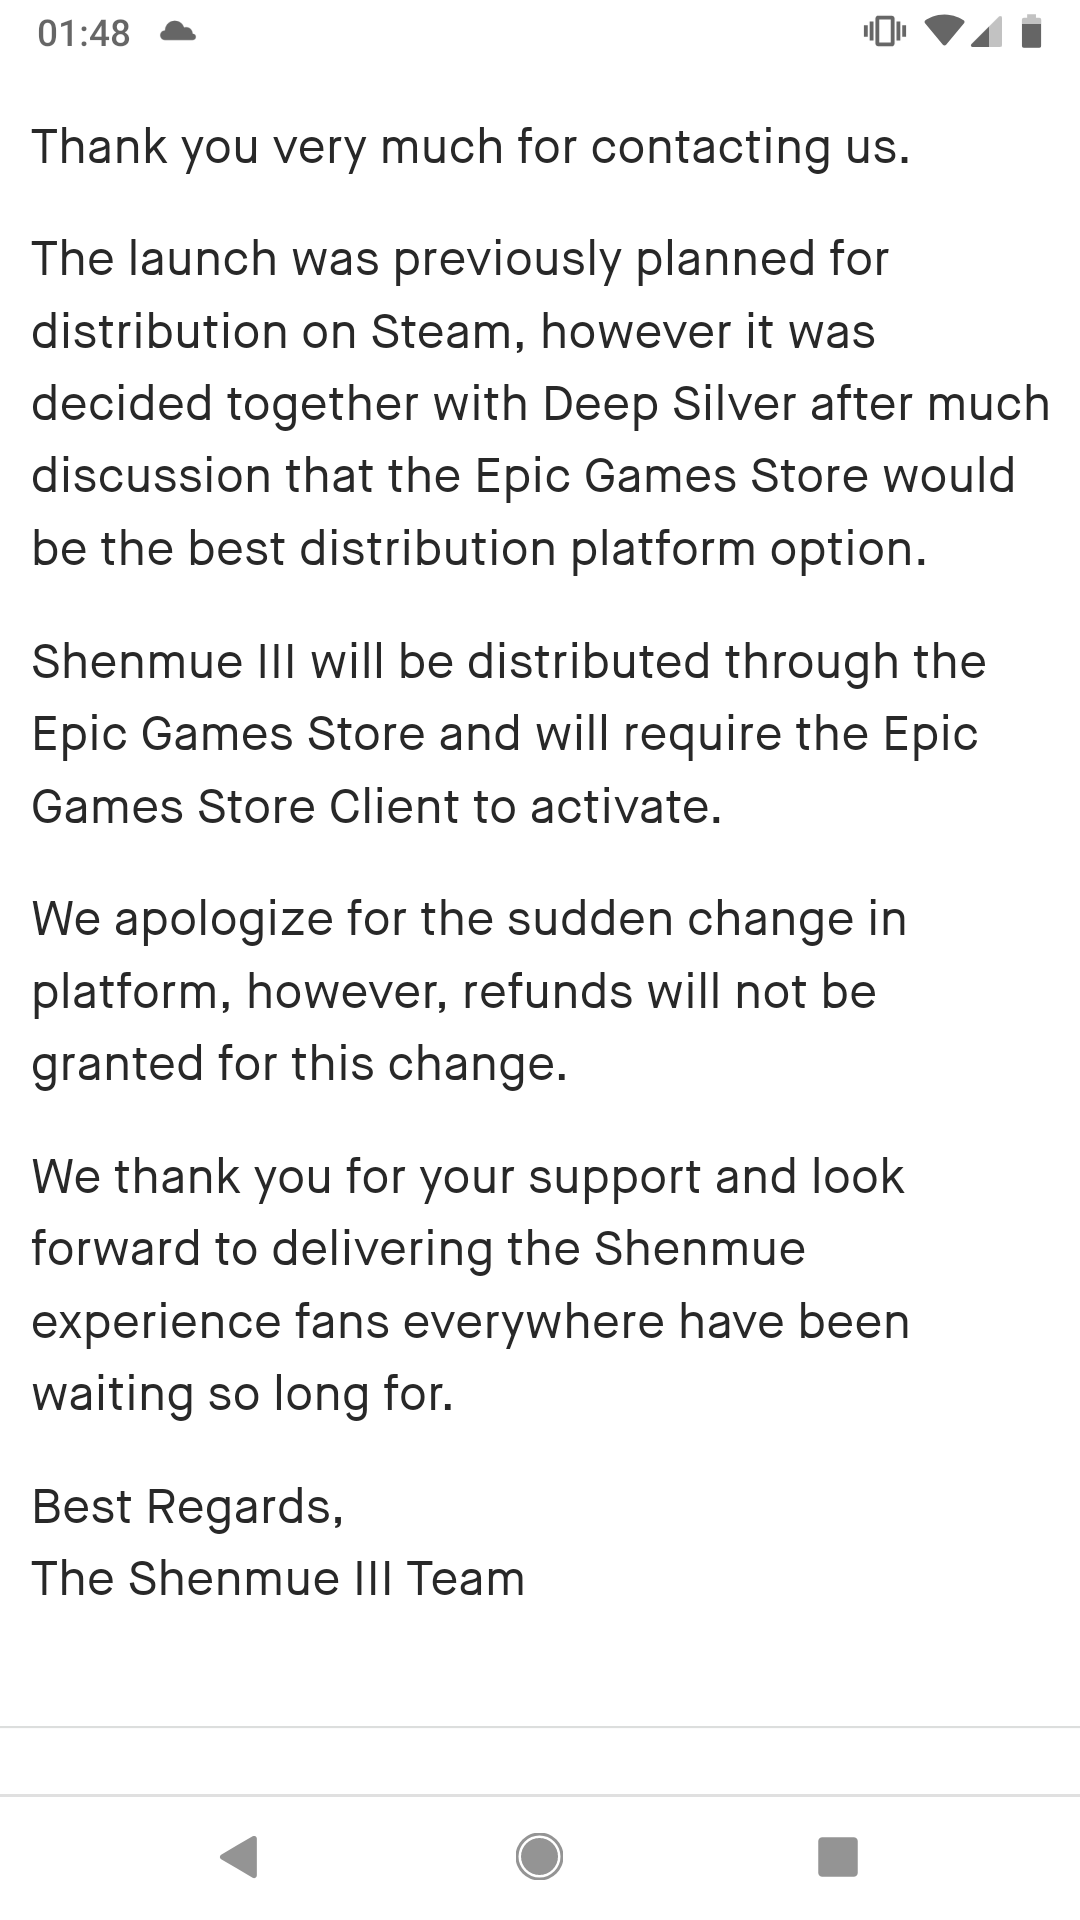 Shenmue III Going Epic Exclusive Leads to Community Uproar